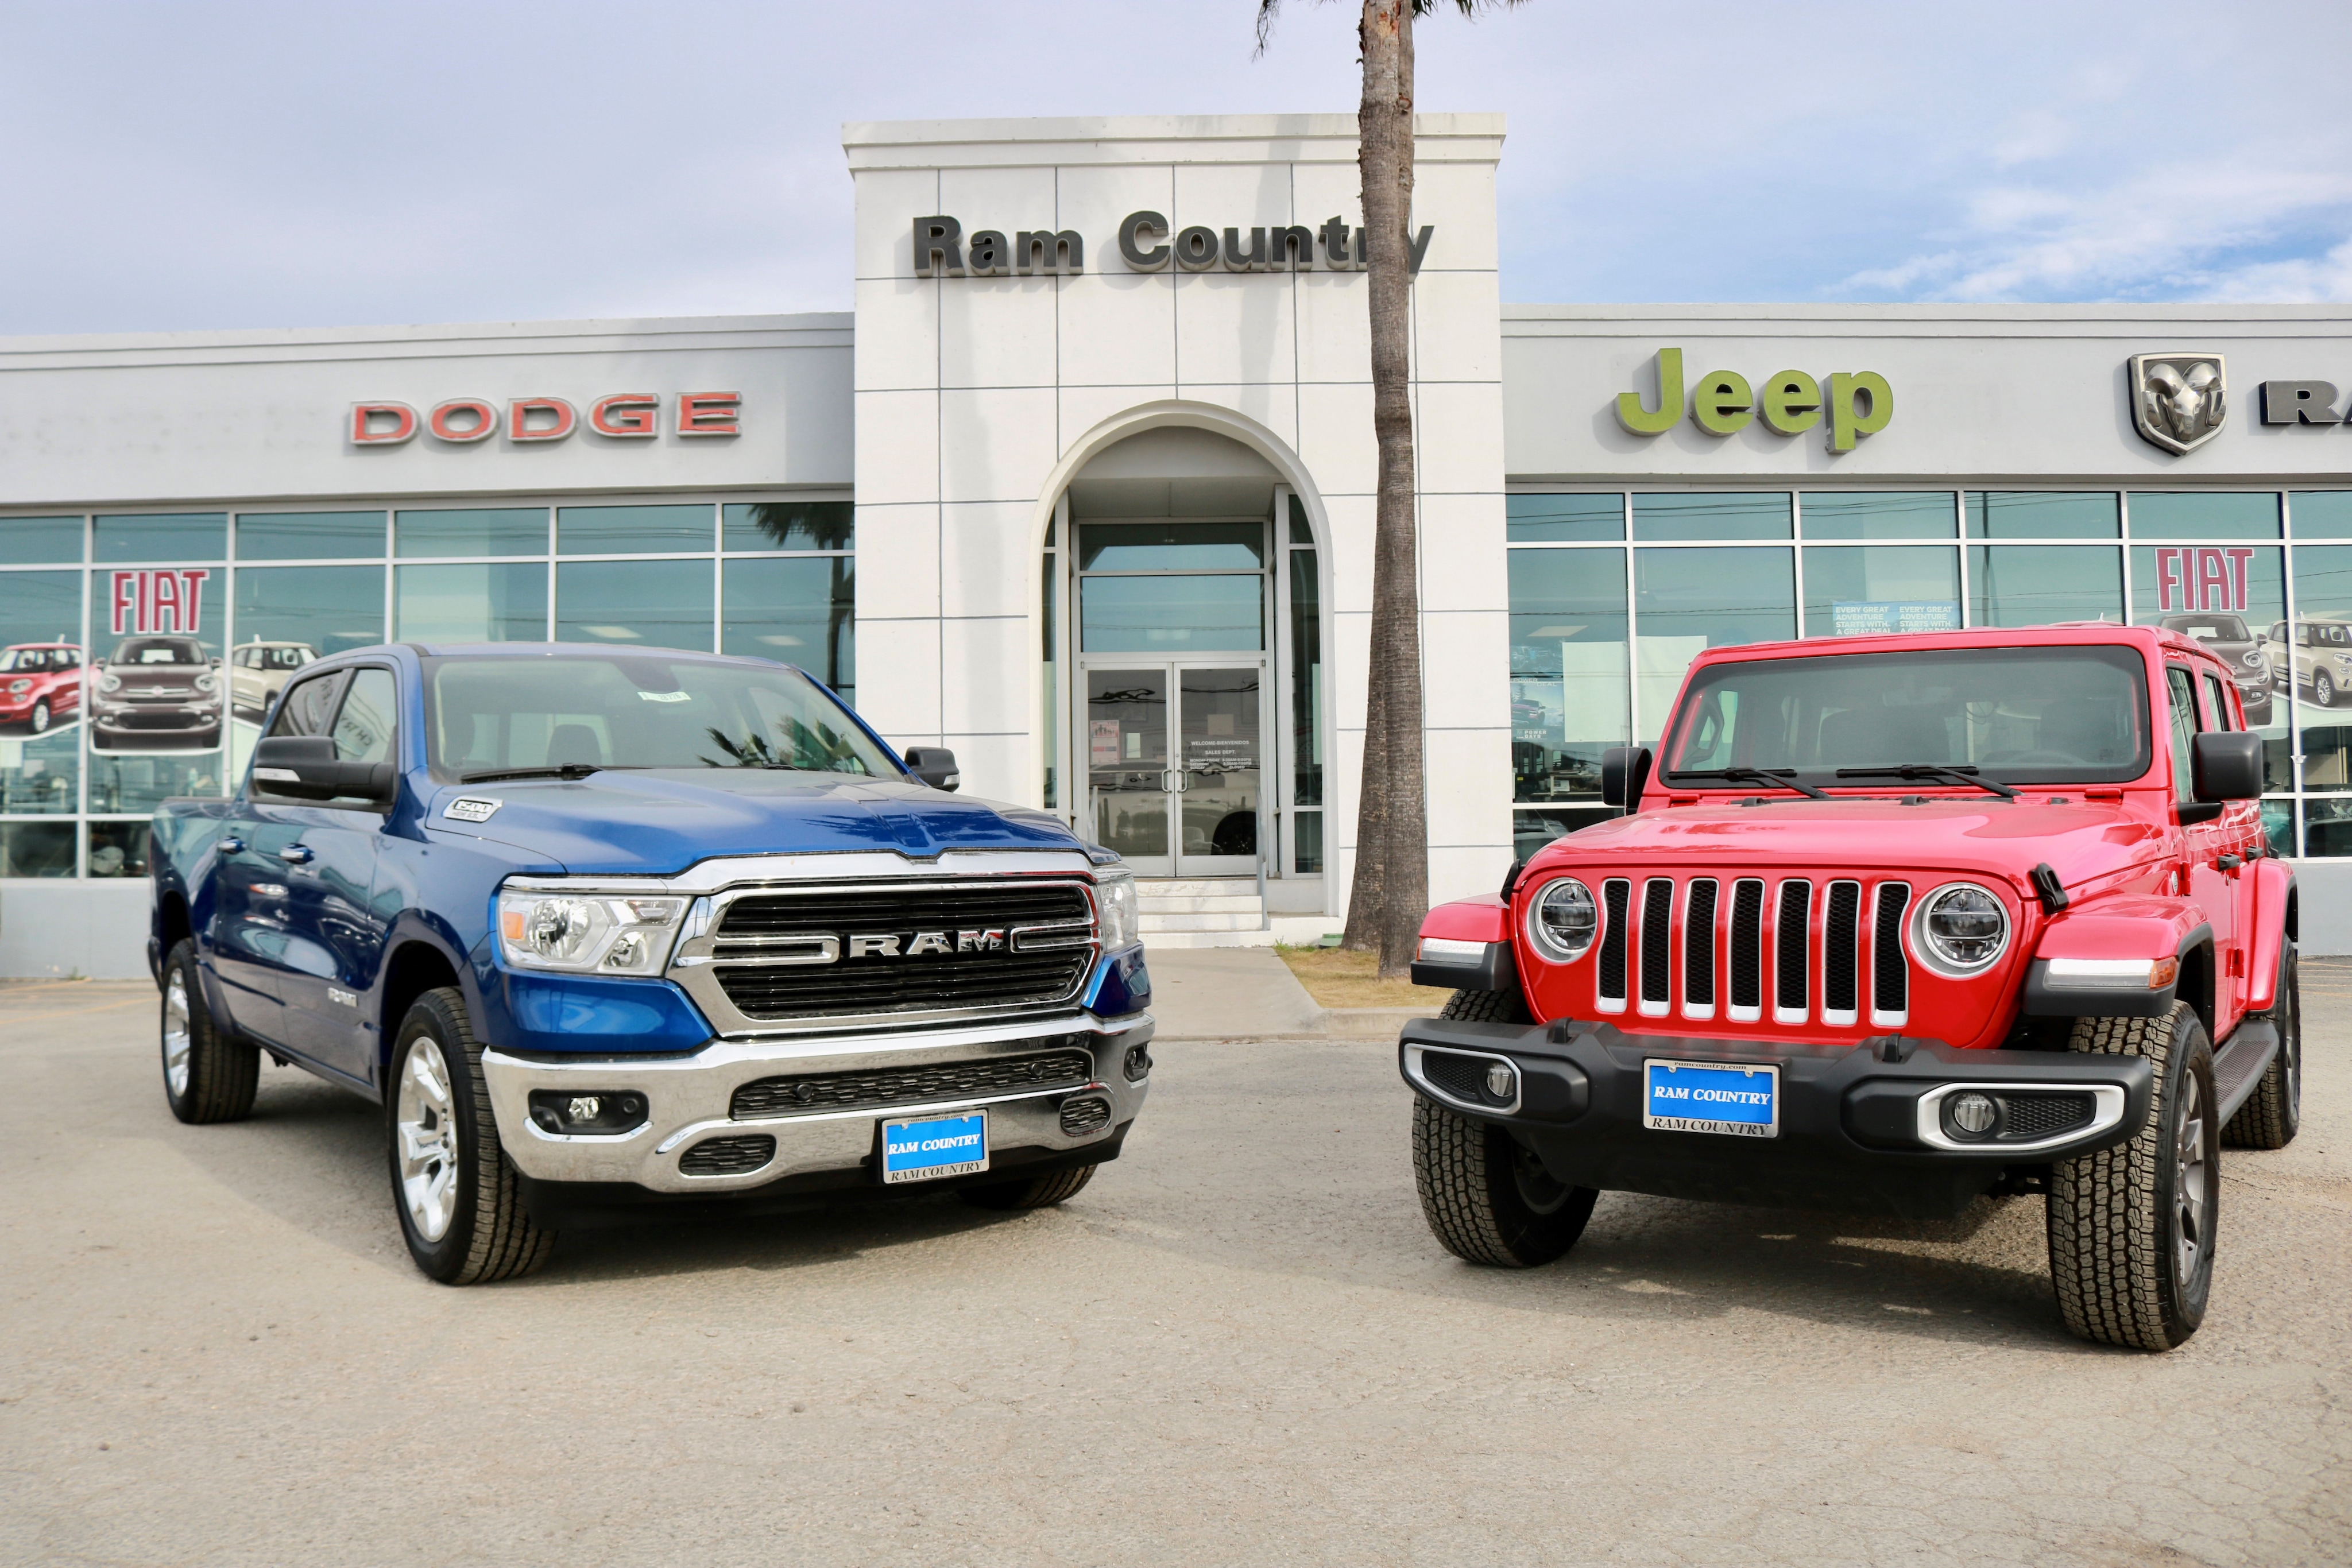 Ram Country Del Rio >> Ram Country Del Rio Huge Selection Best Prices On New